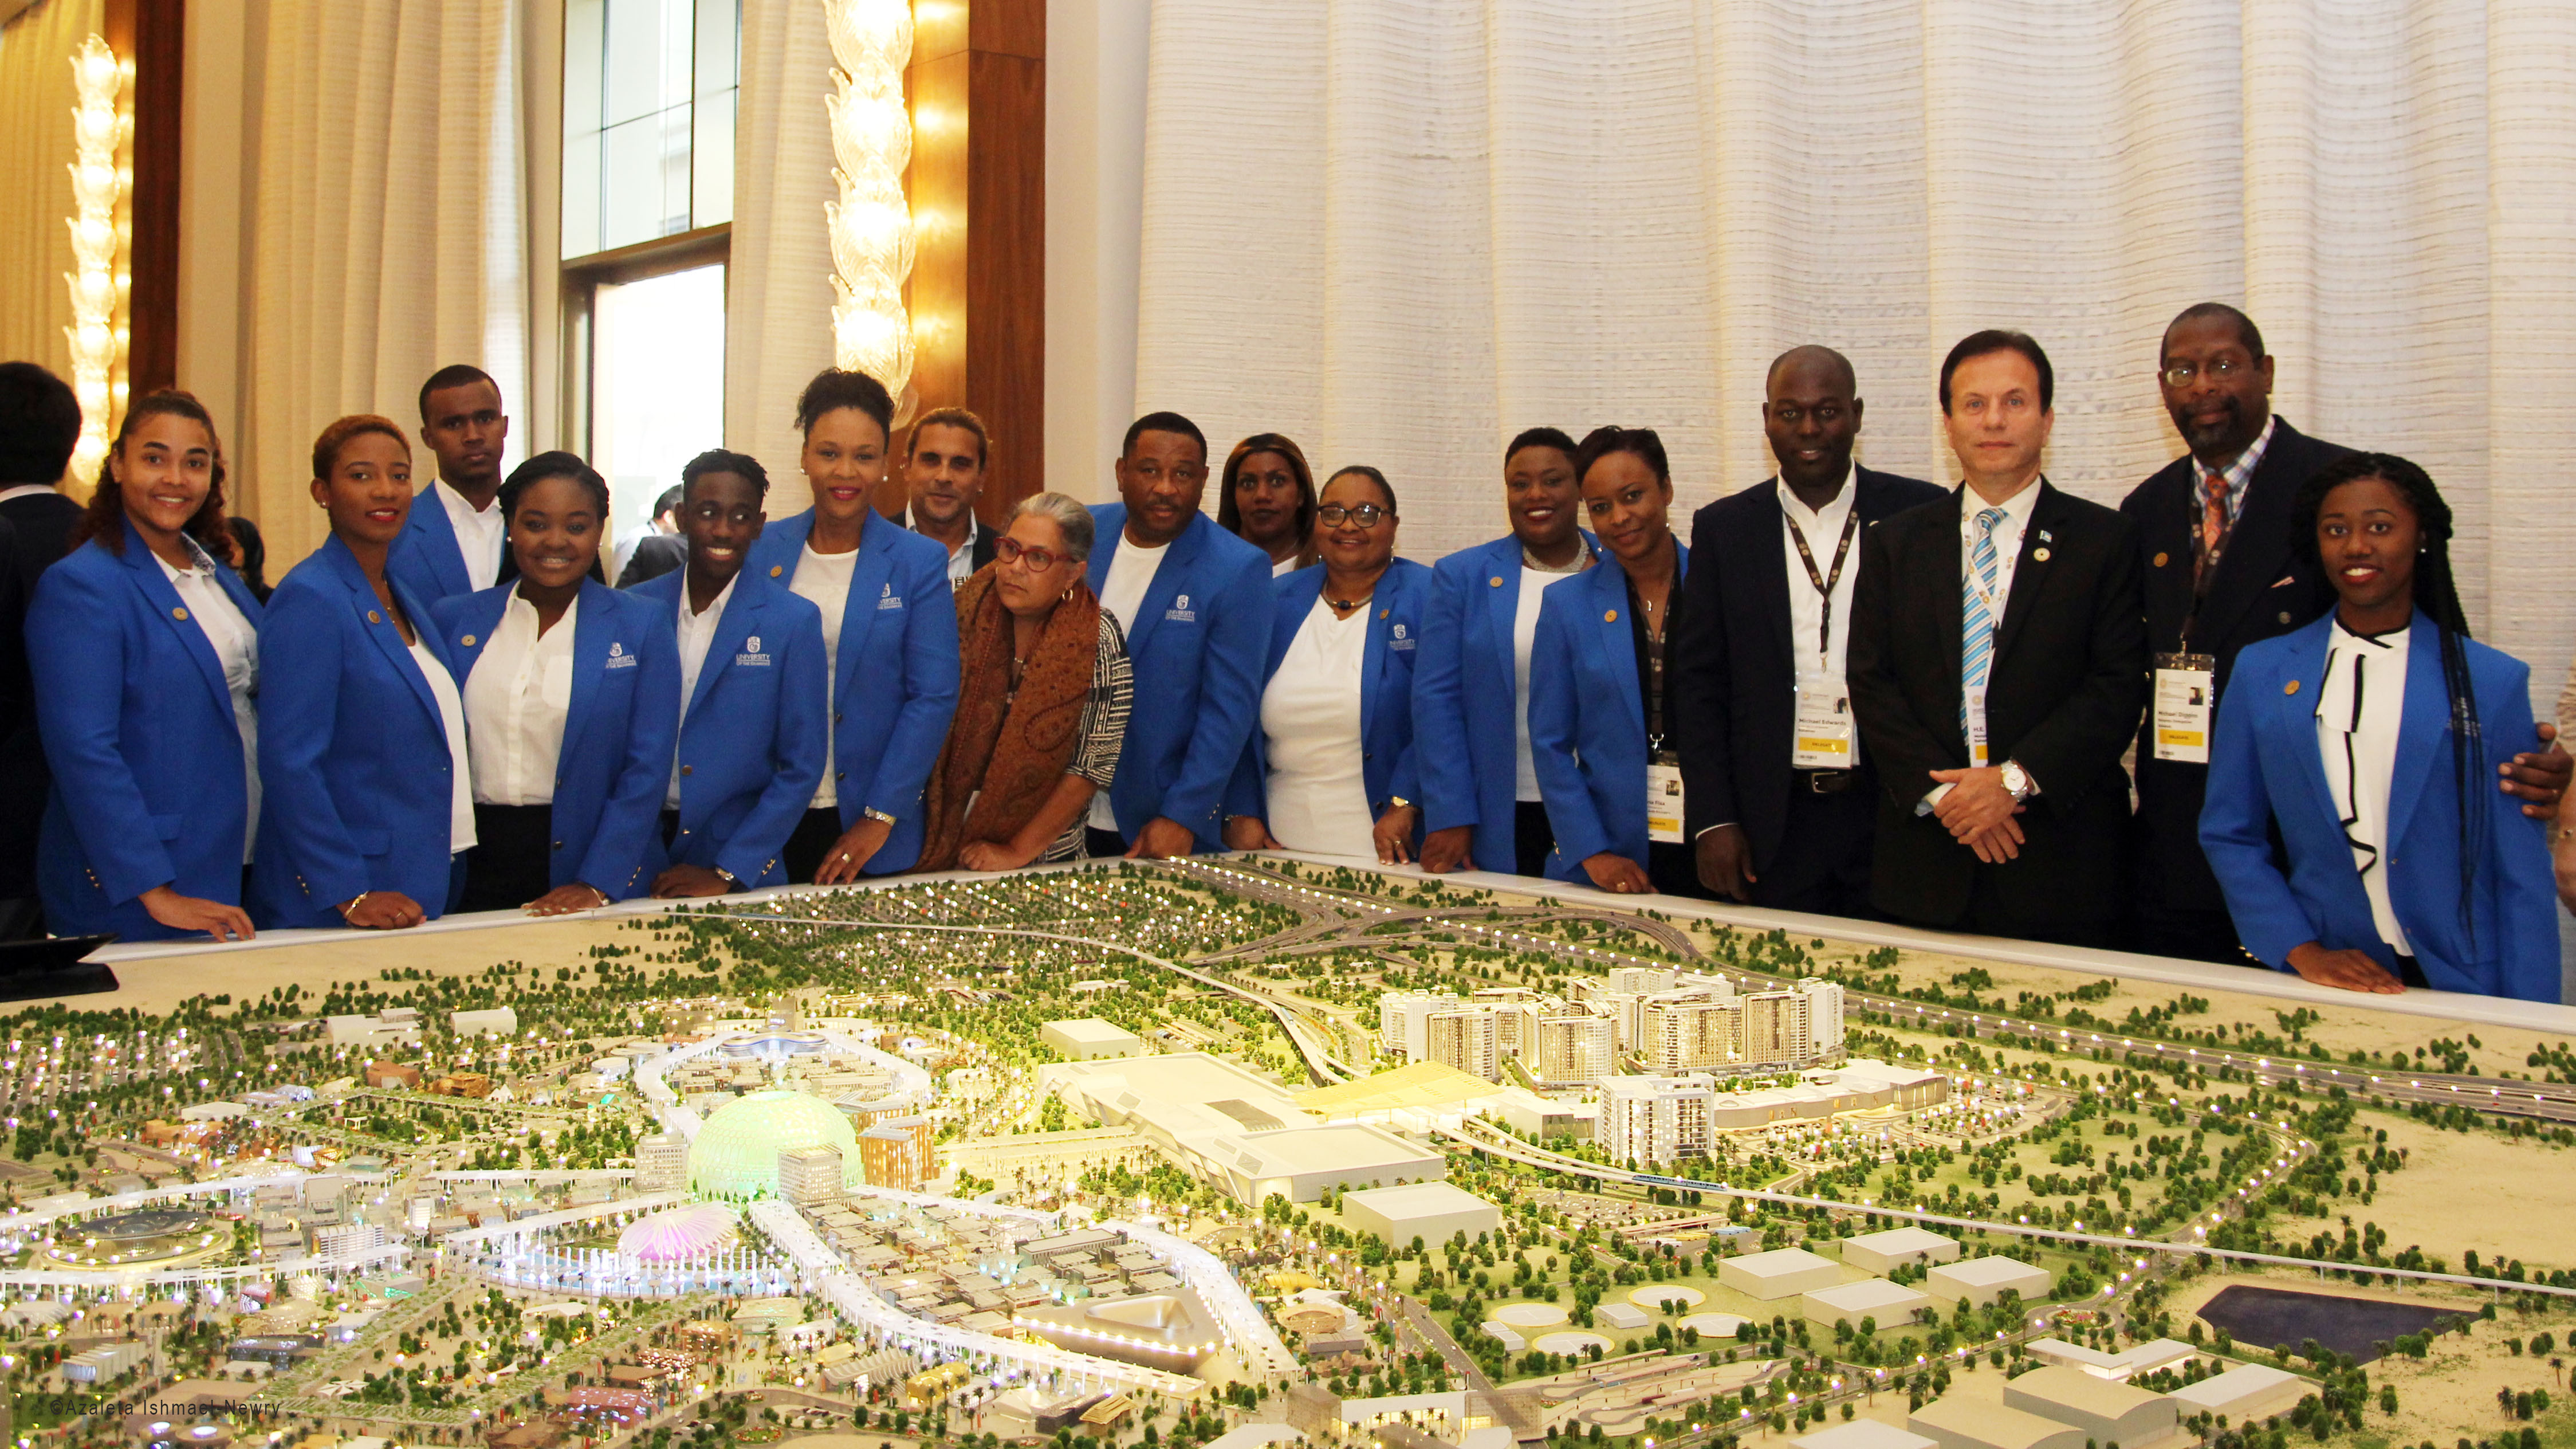 Pavillon Bahama Pavilion Designed By University Of The Bahamas Students Becomes